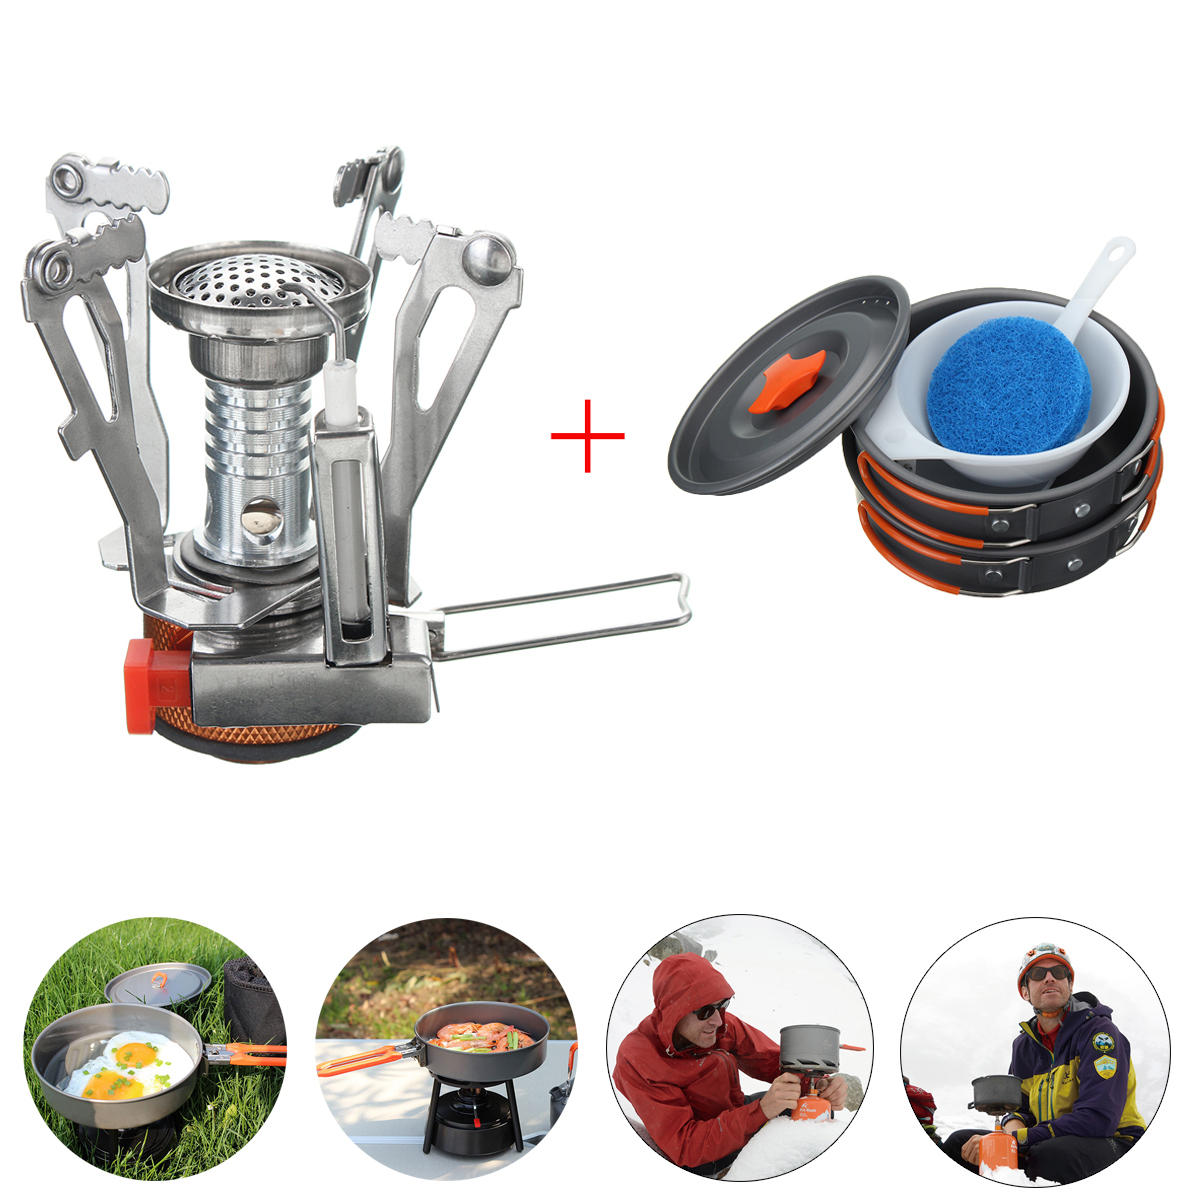 5e53dccf297 camping stove pot pan kit set for outdoor camping backpacking hiking cooking  equipment Sale - Banggood.com sold out